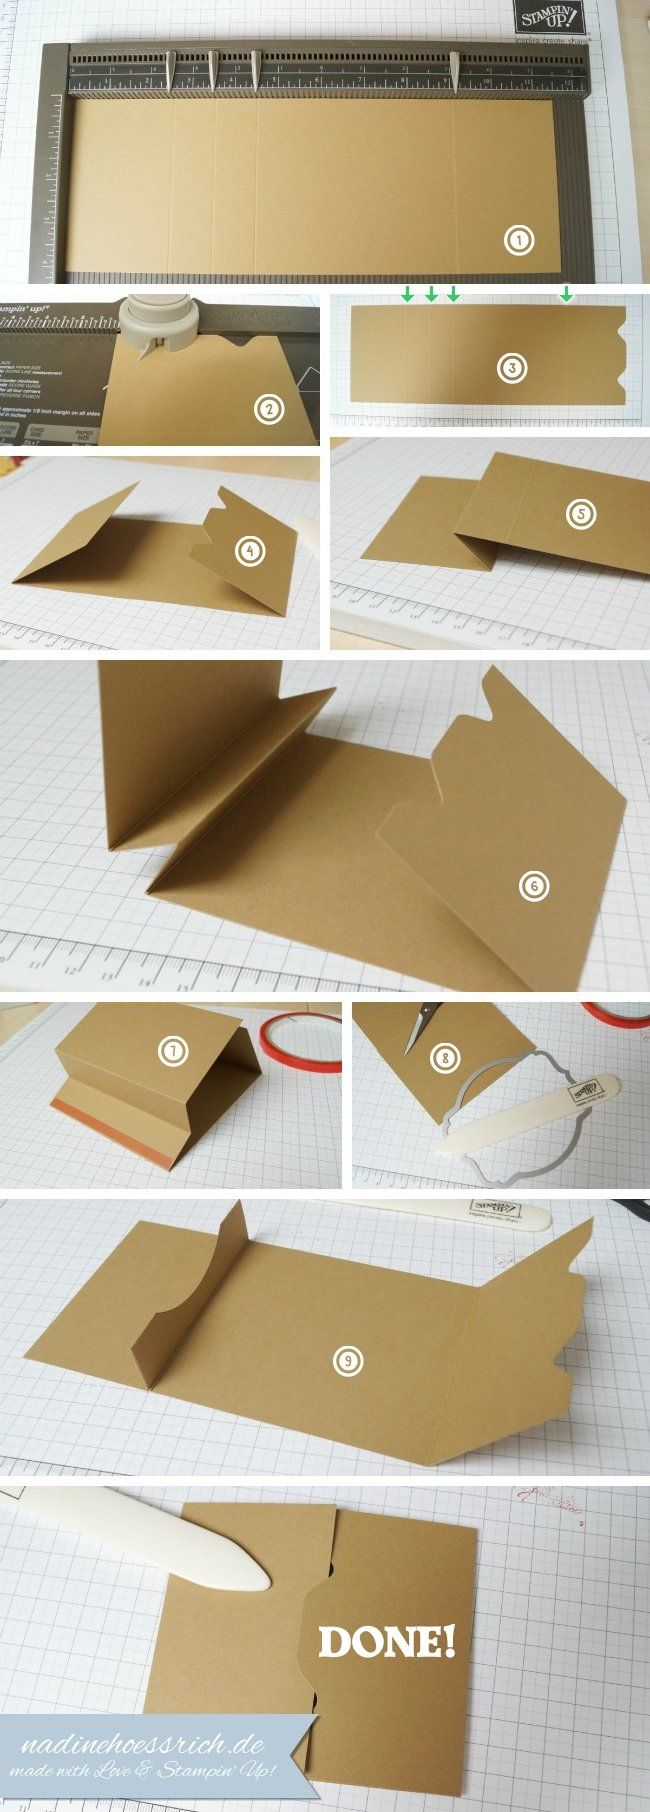 Tutorial: Gift-Card-Holder - www.nadinehoessrich.de... she has the instructions translated on her blog (blue font is English)